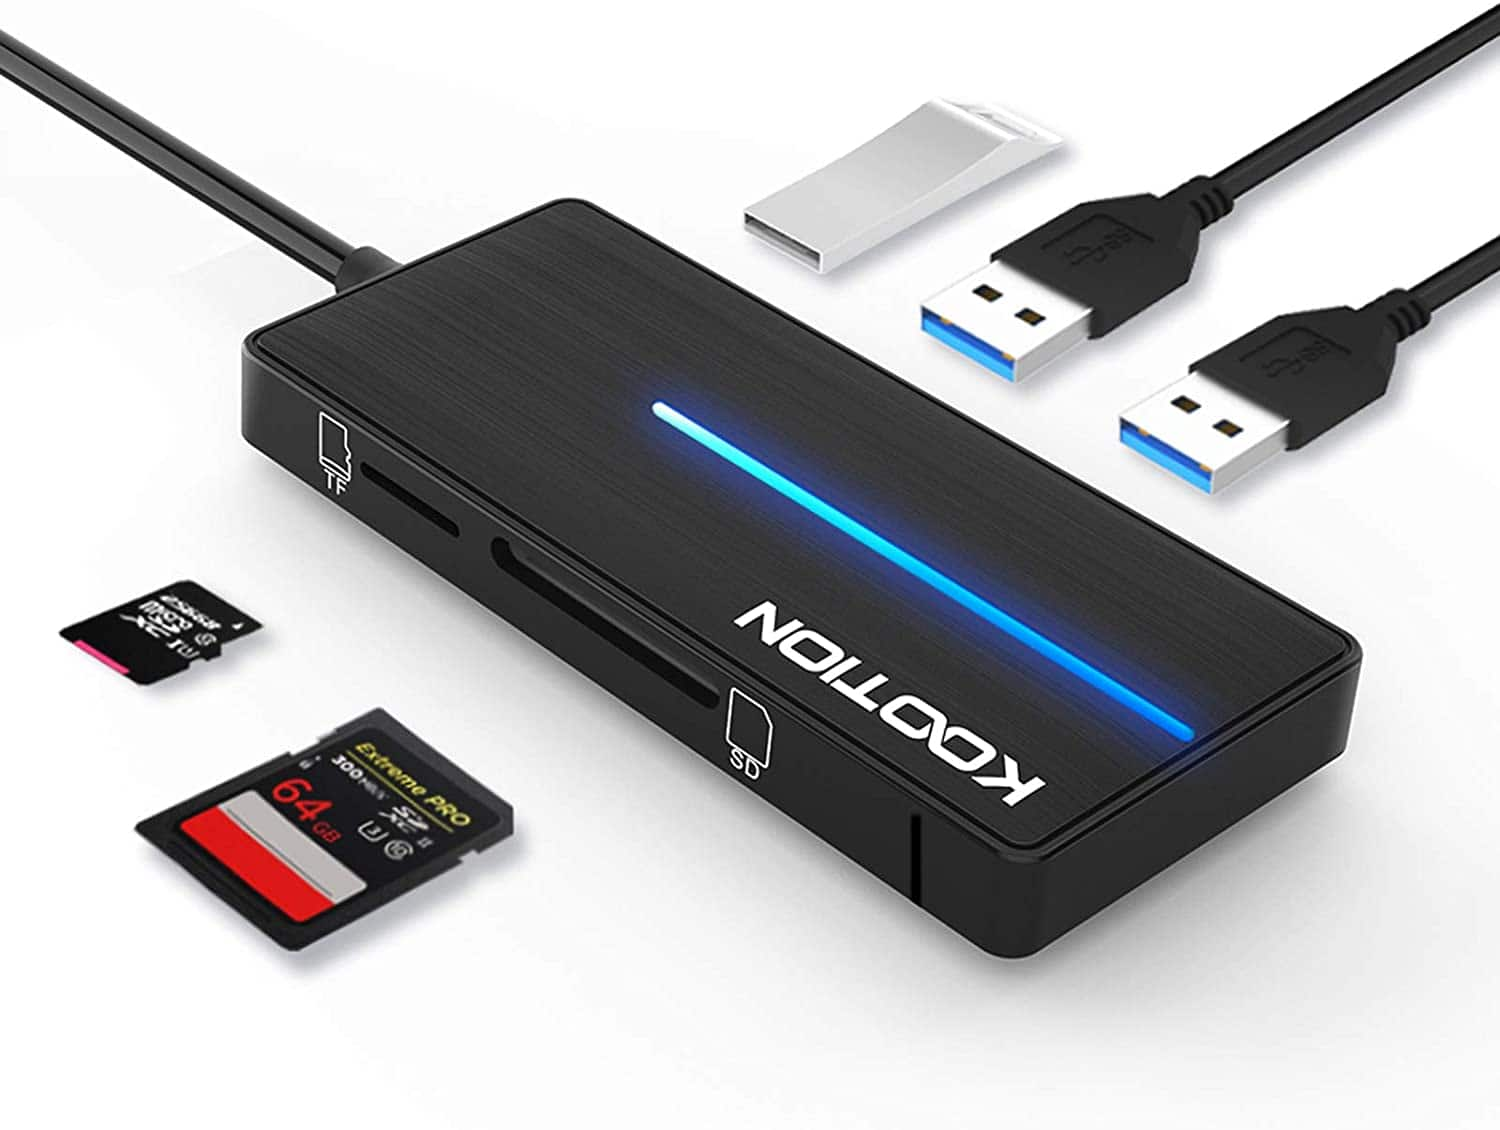 KOOTION 5 in 1 USB 3.0 Hub with SD/TF Card Reader Ports with LED Indicator - $7.91 + FS w/ Prime or orders $25+